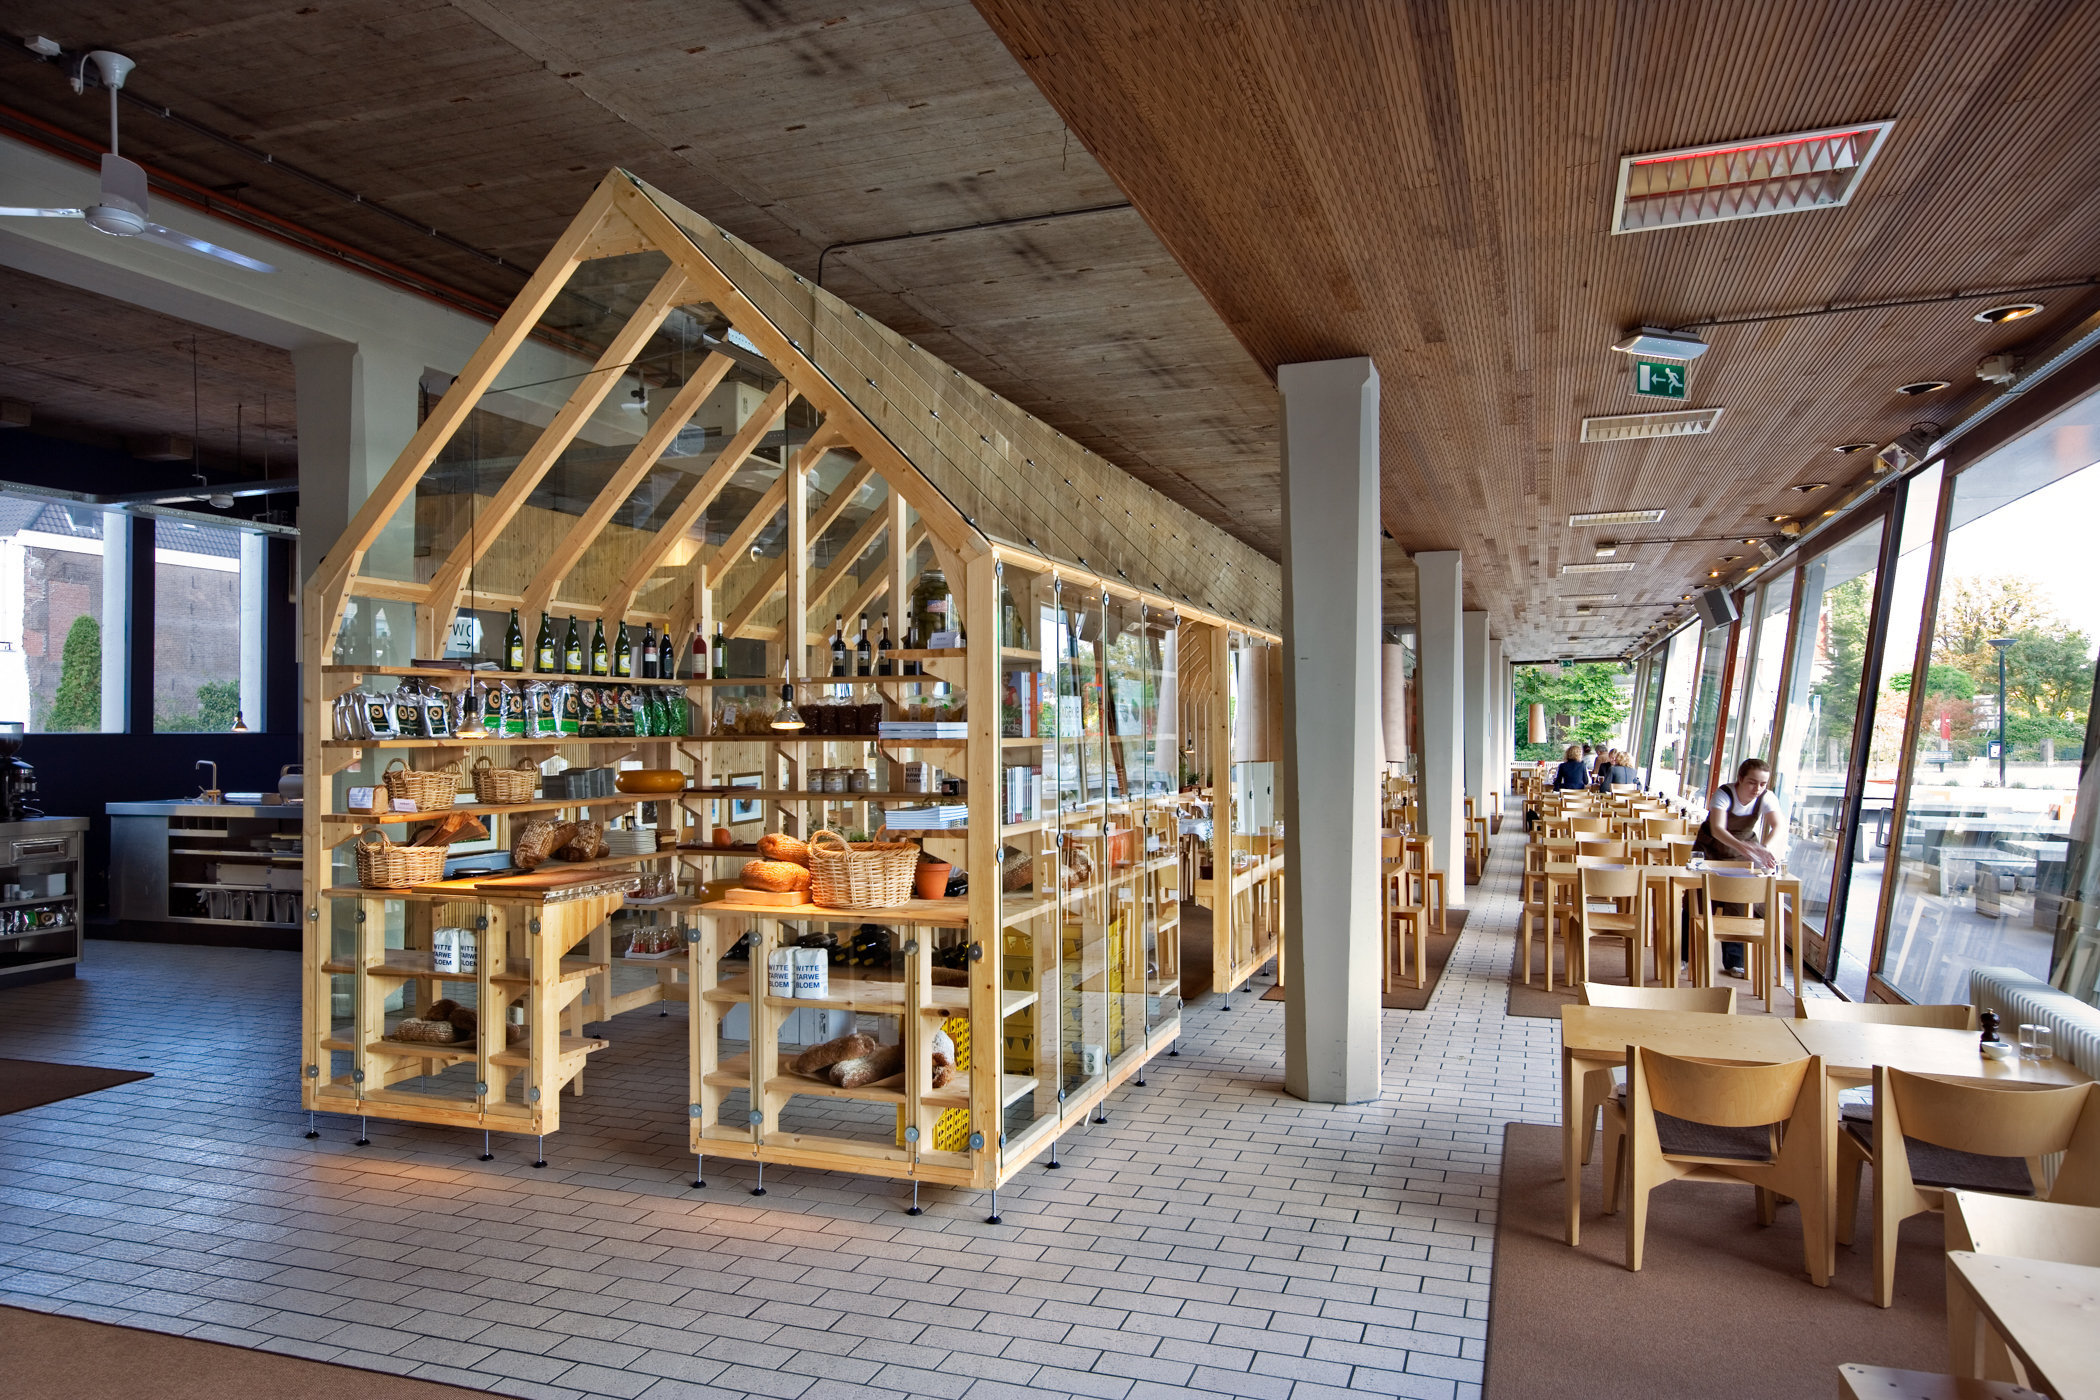 Restaurant Sober, Amersfoort, The Netherlands